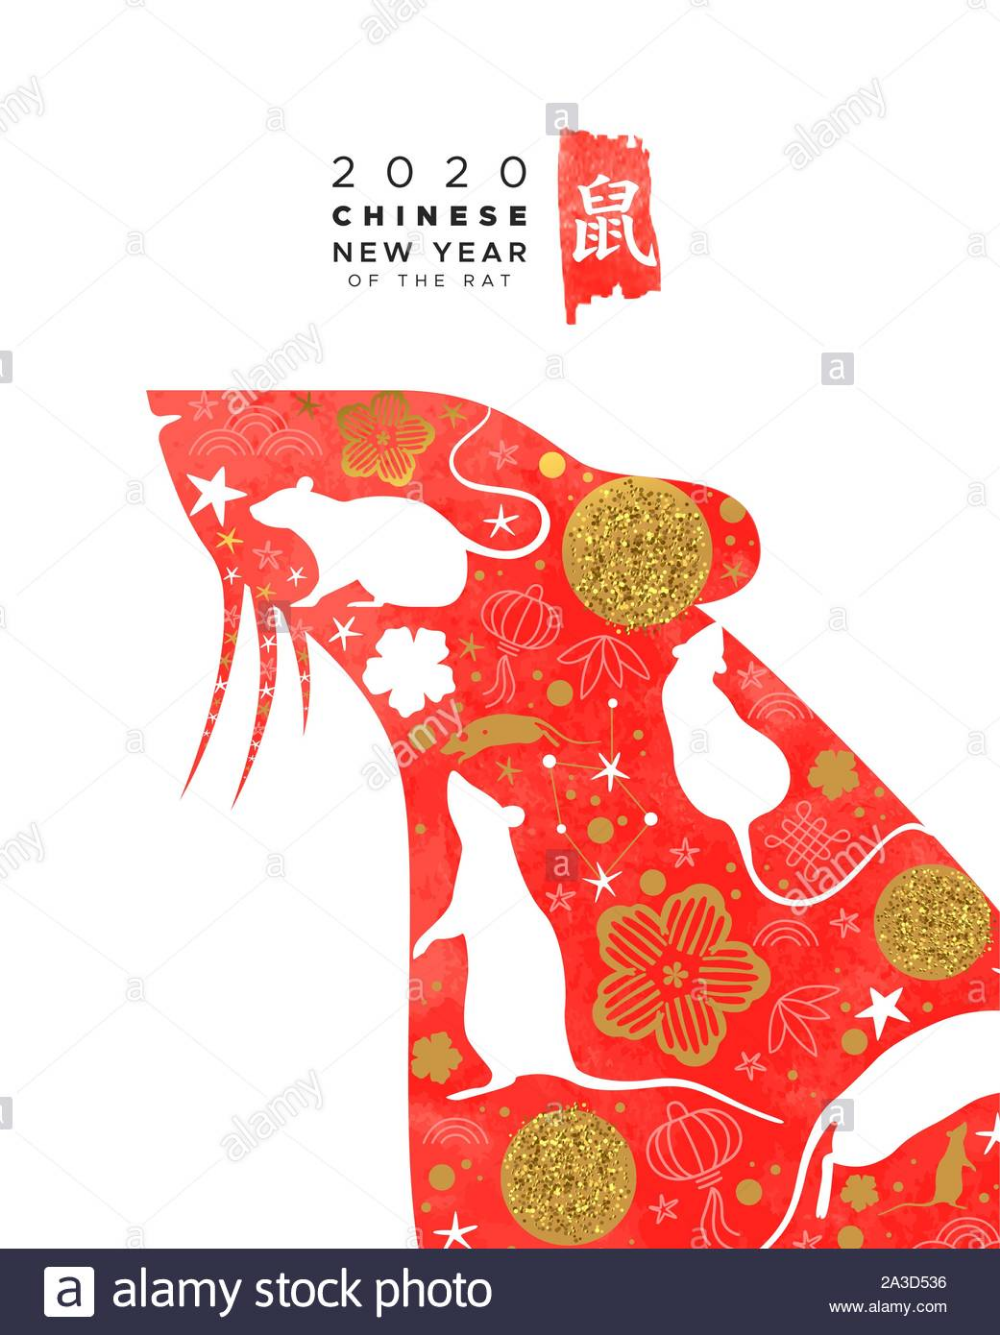 Chinese New Year 2020 greeting card of Chinese new